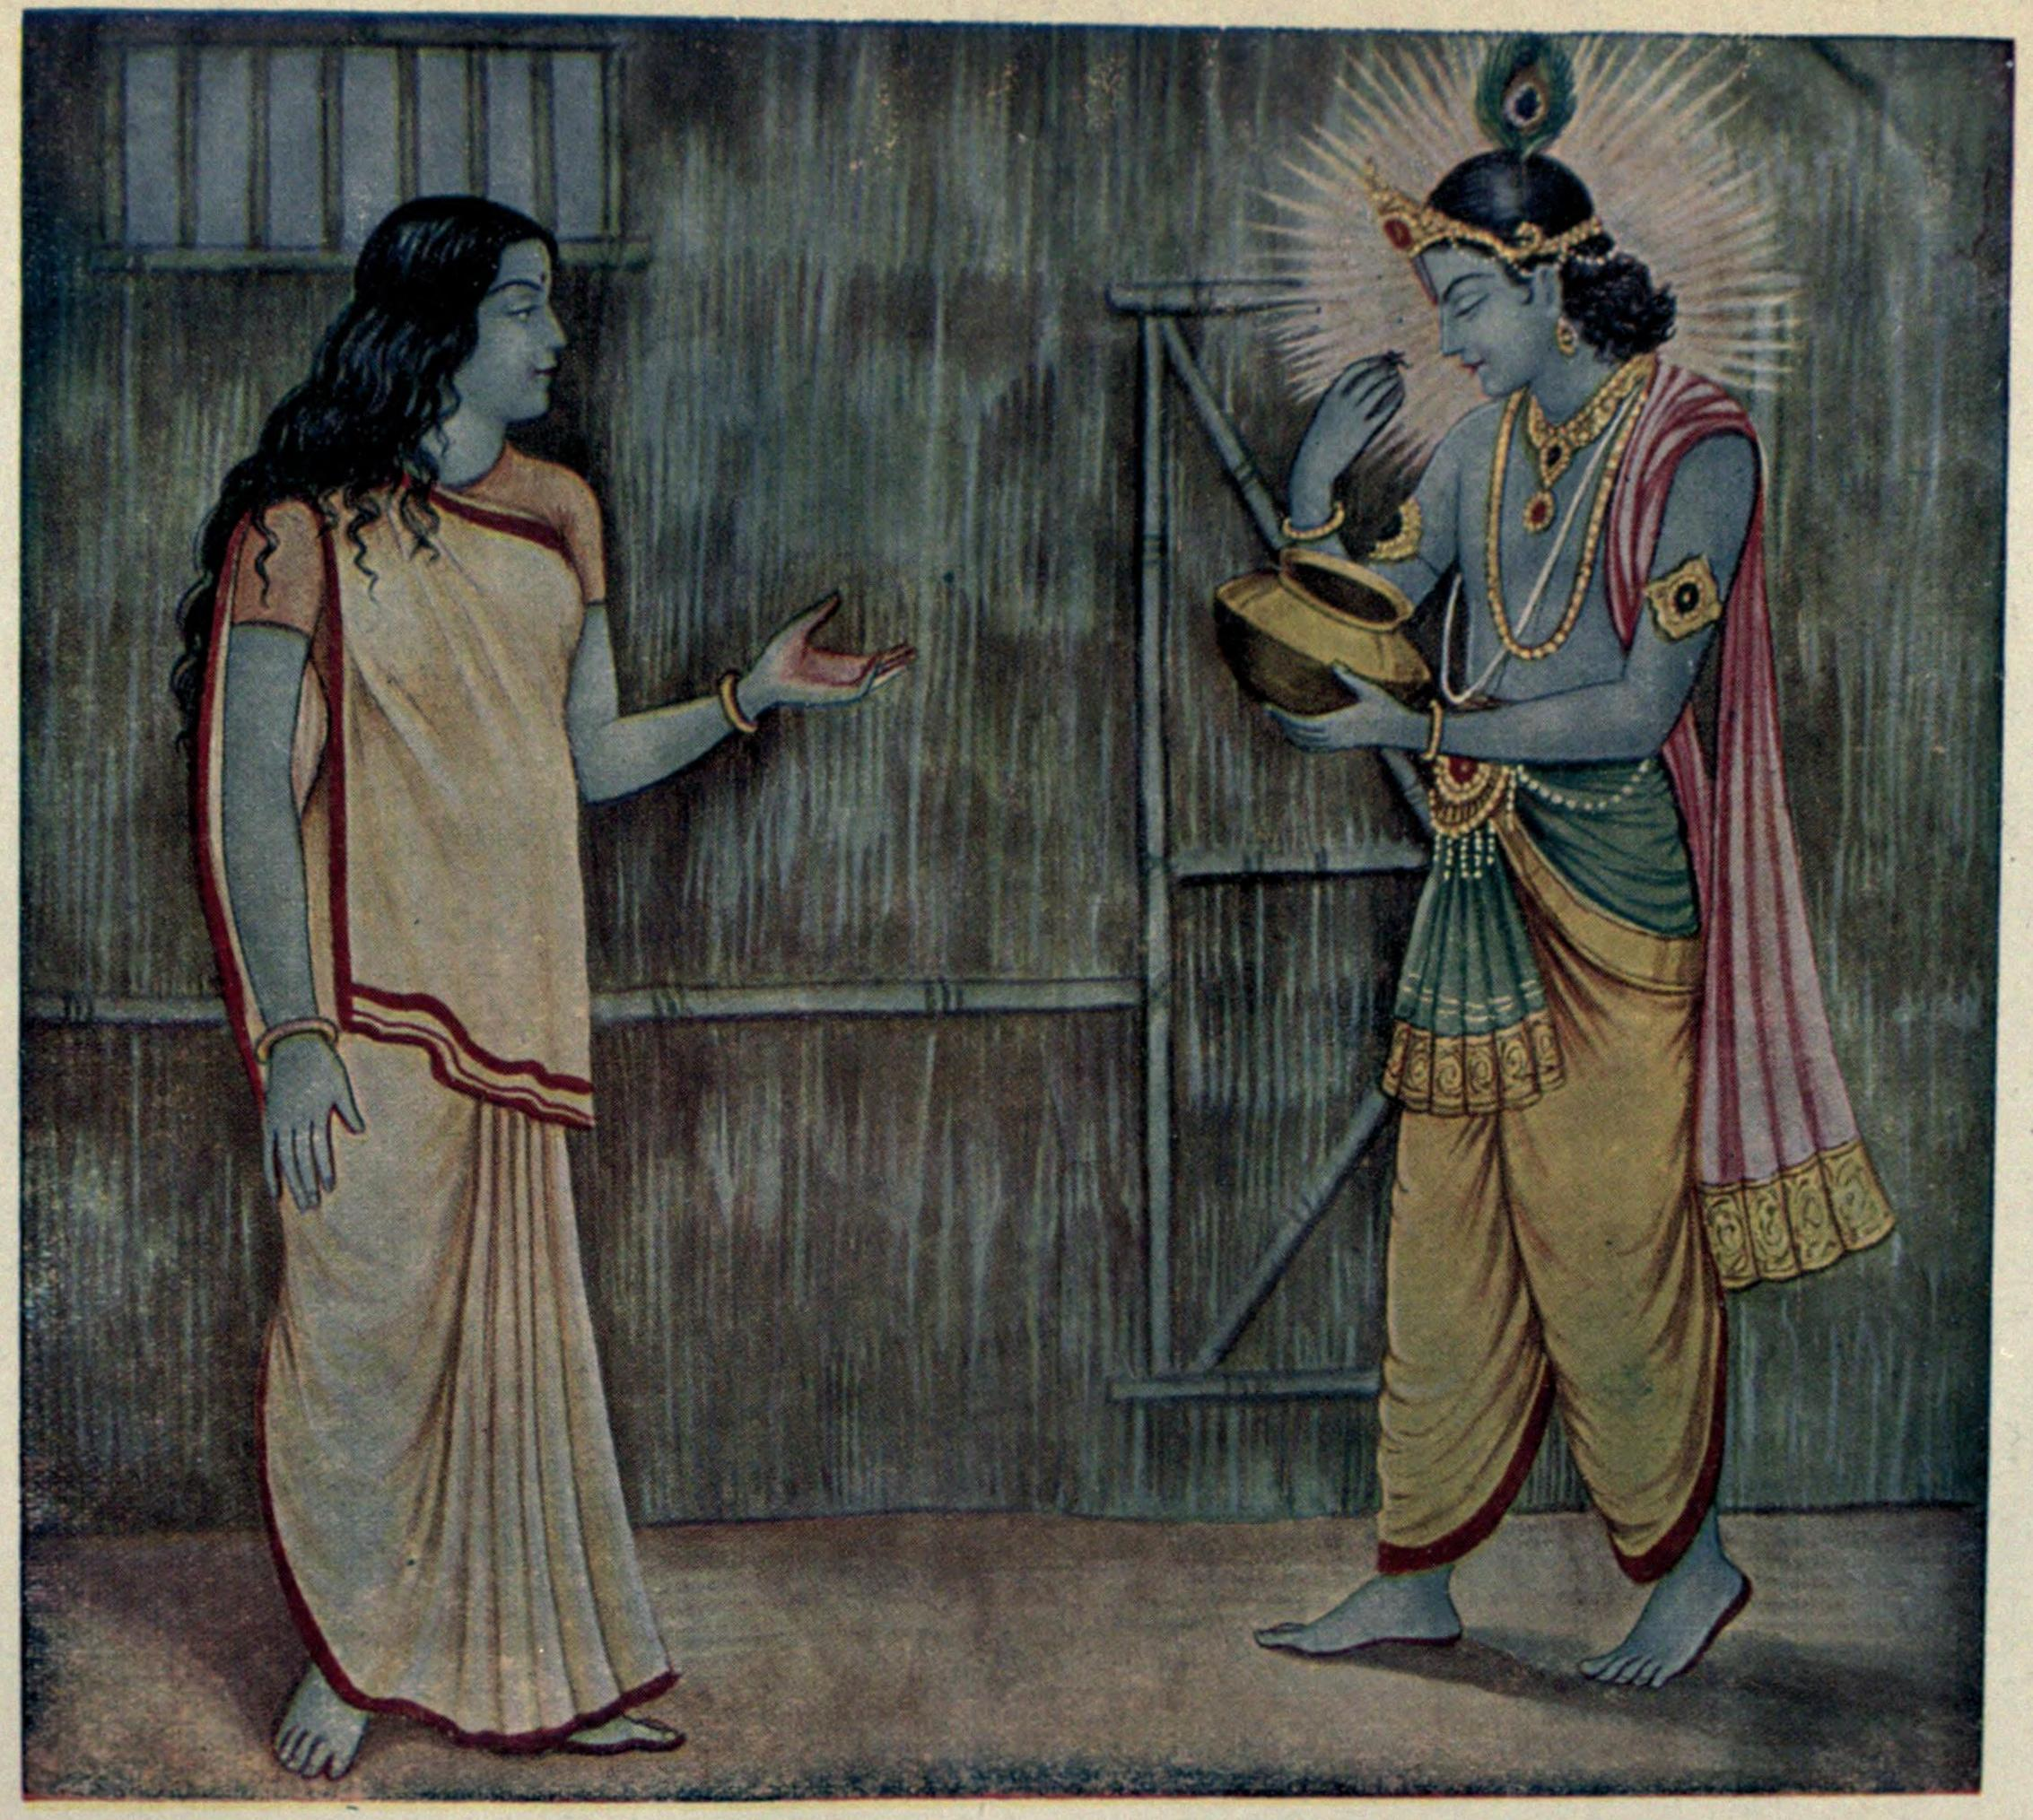 when lord krishna told importance of one piece of food